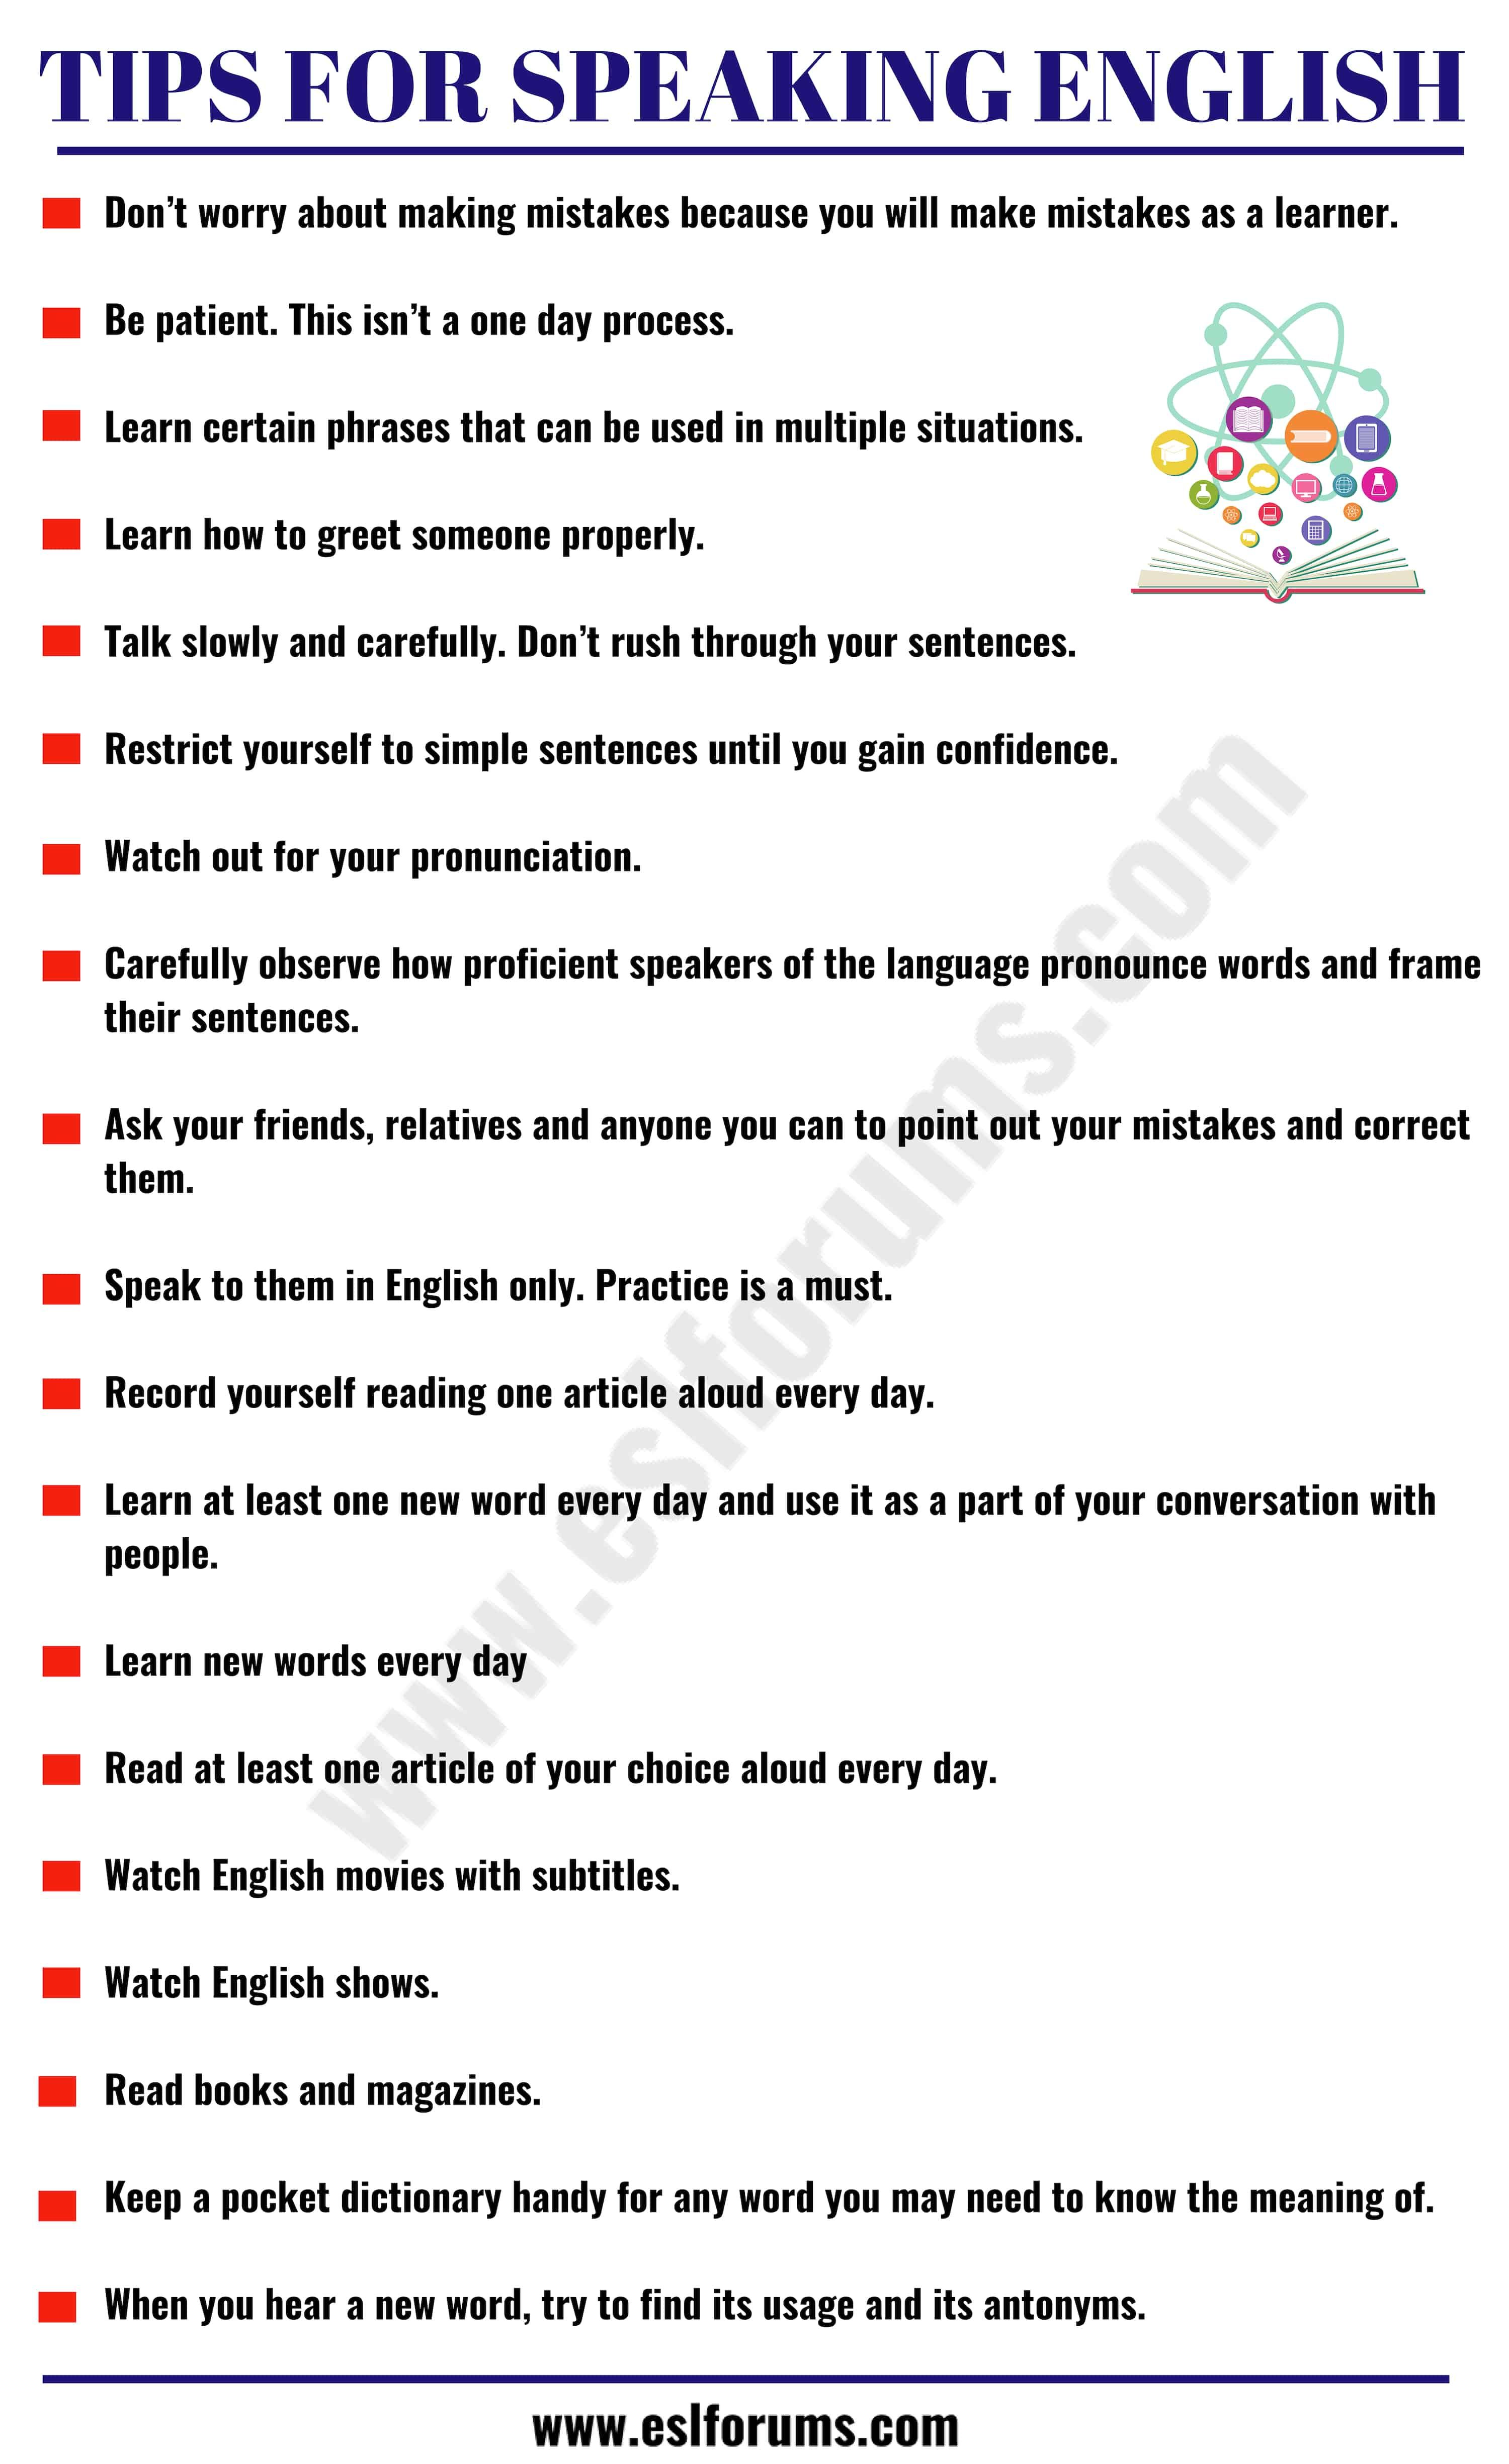 How to speak english fluently 20 helpful tips to improve